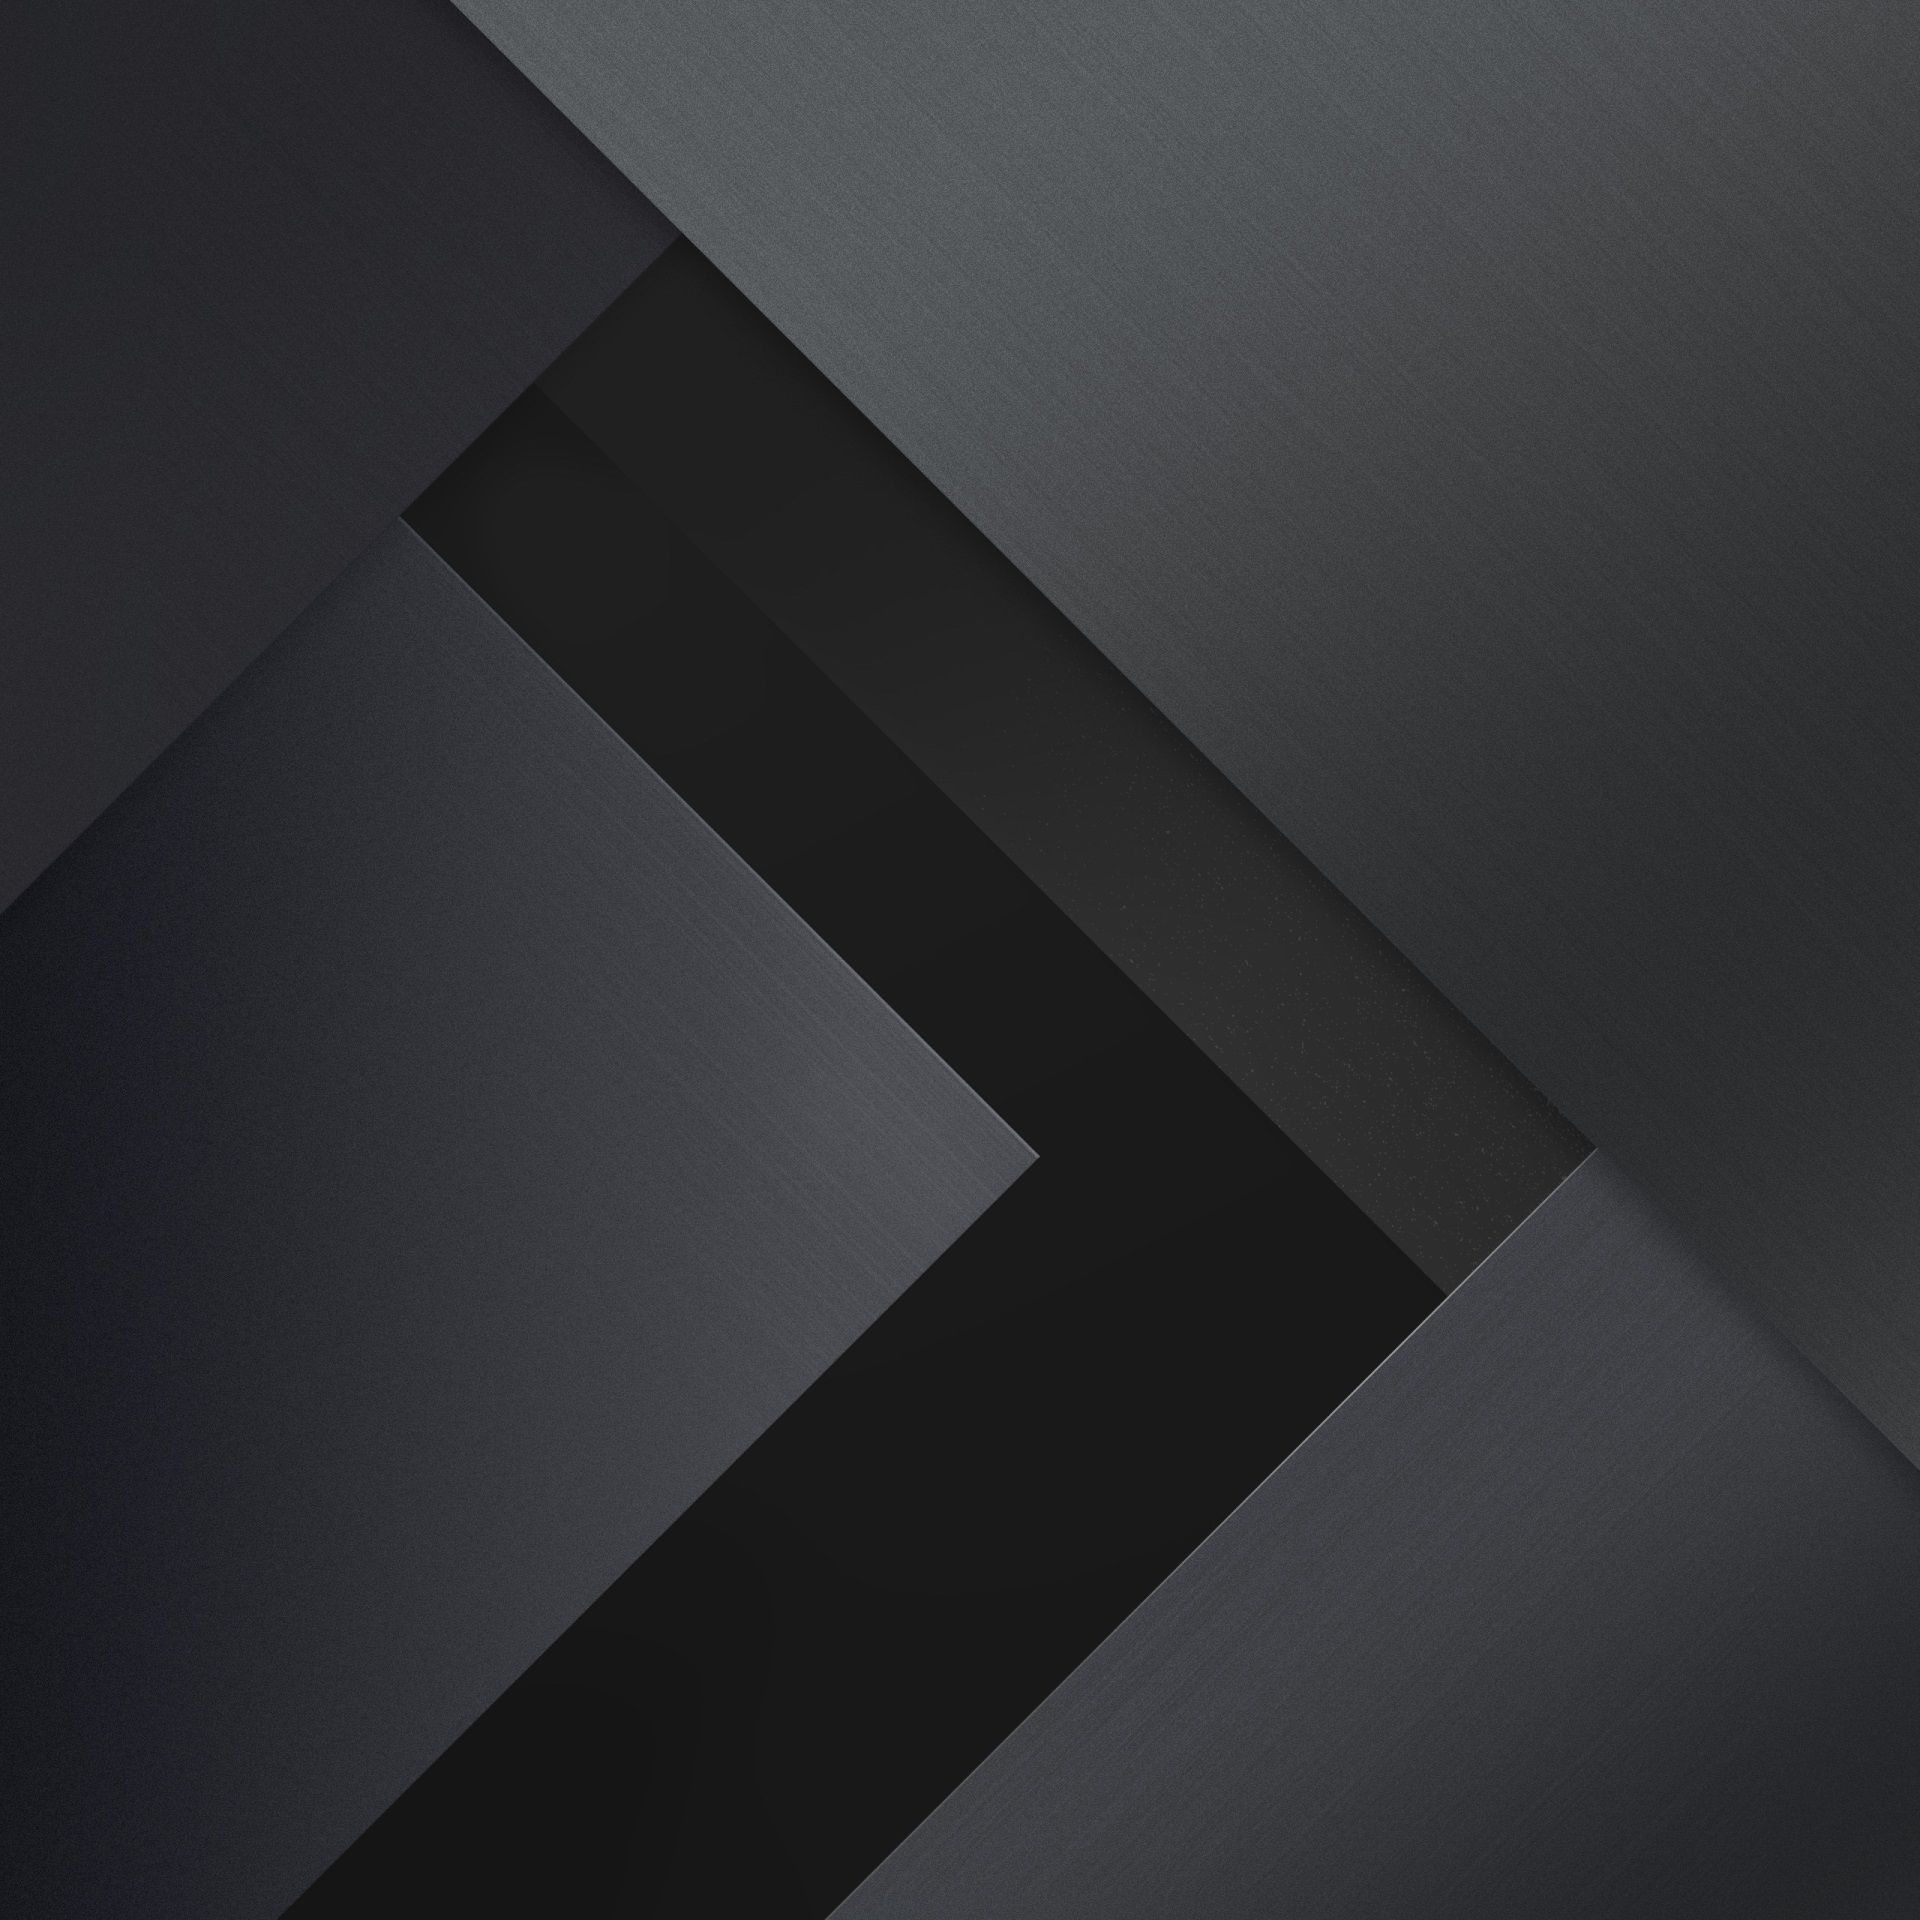 1920x1920 material design images for backgrounds desktop free 1920x1920 material design images for backgrounds desktop free voltagebd Image collections